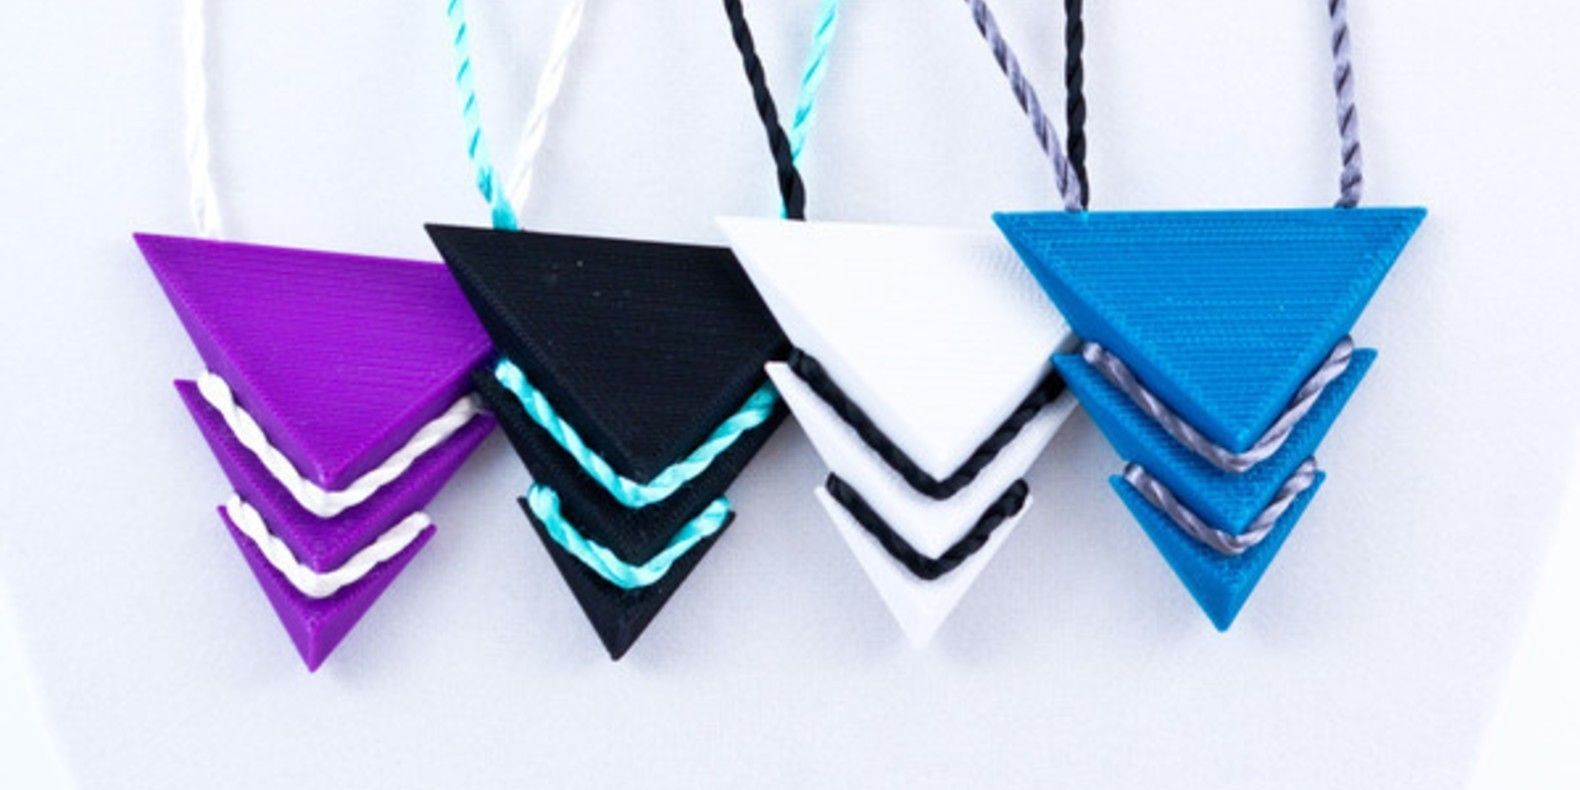 3D printed jewelry from Future Factory 3D